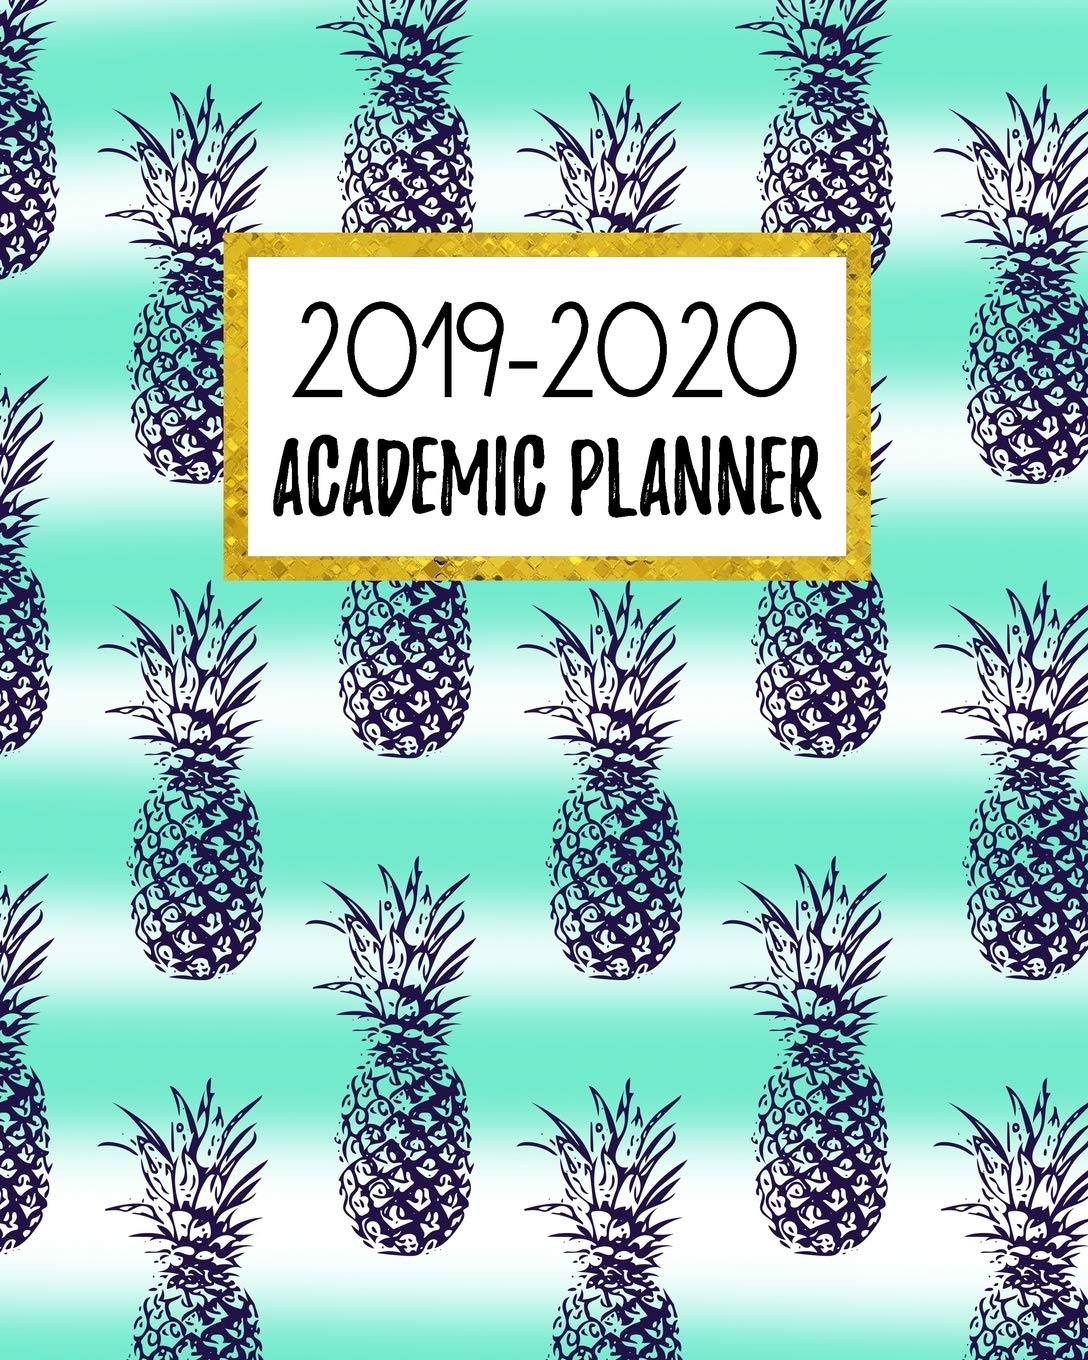 2019-2020 Academic Planner Weekly and Monthly Dated Calendar Class Timetable With To Dos /& Notes July 2019 Daily June 2020 V9